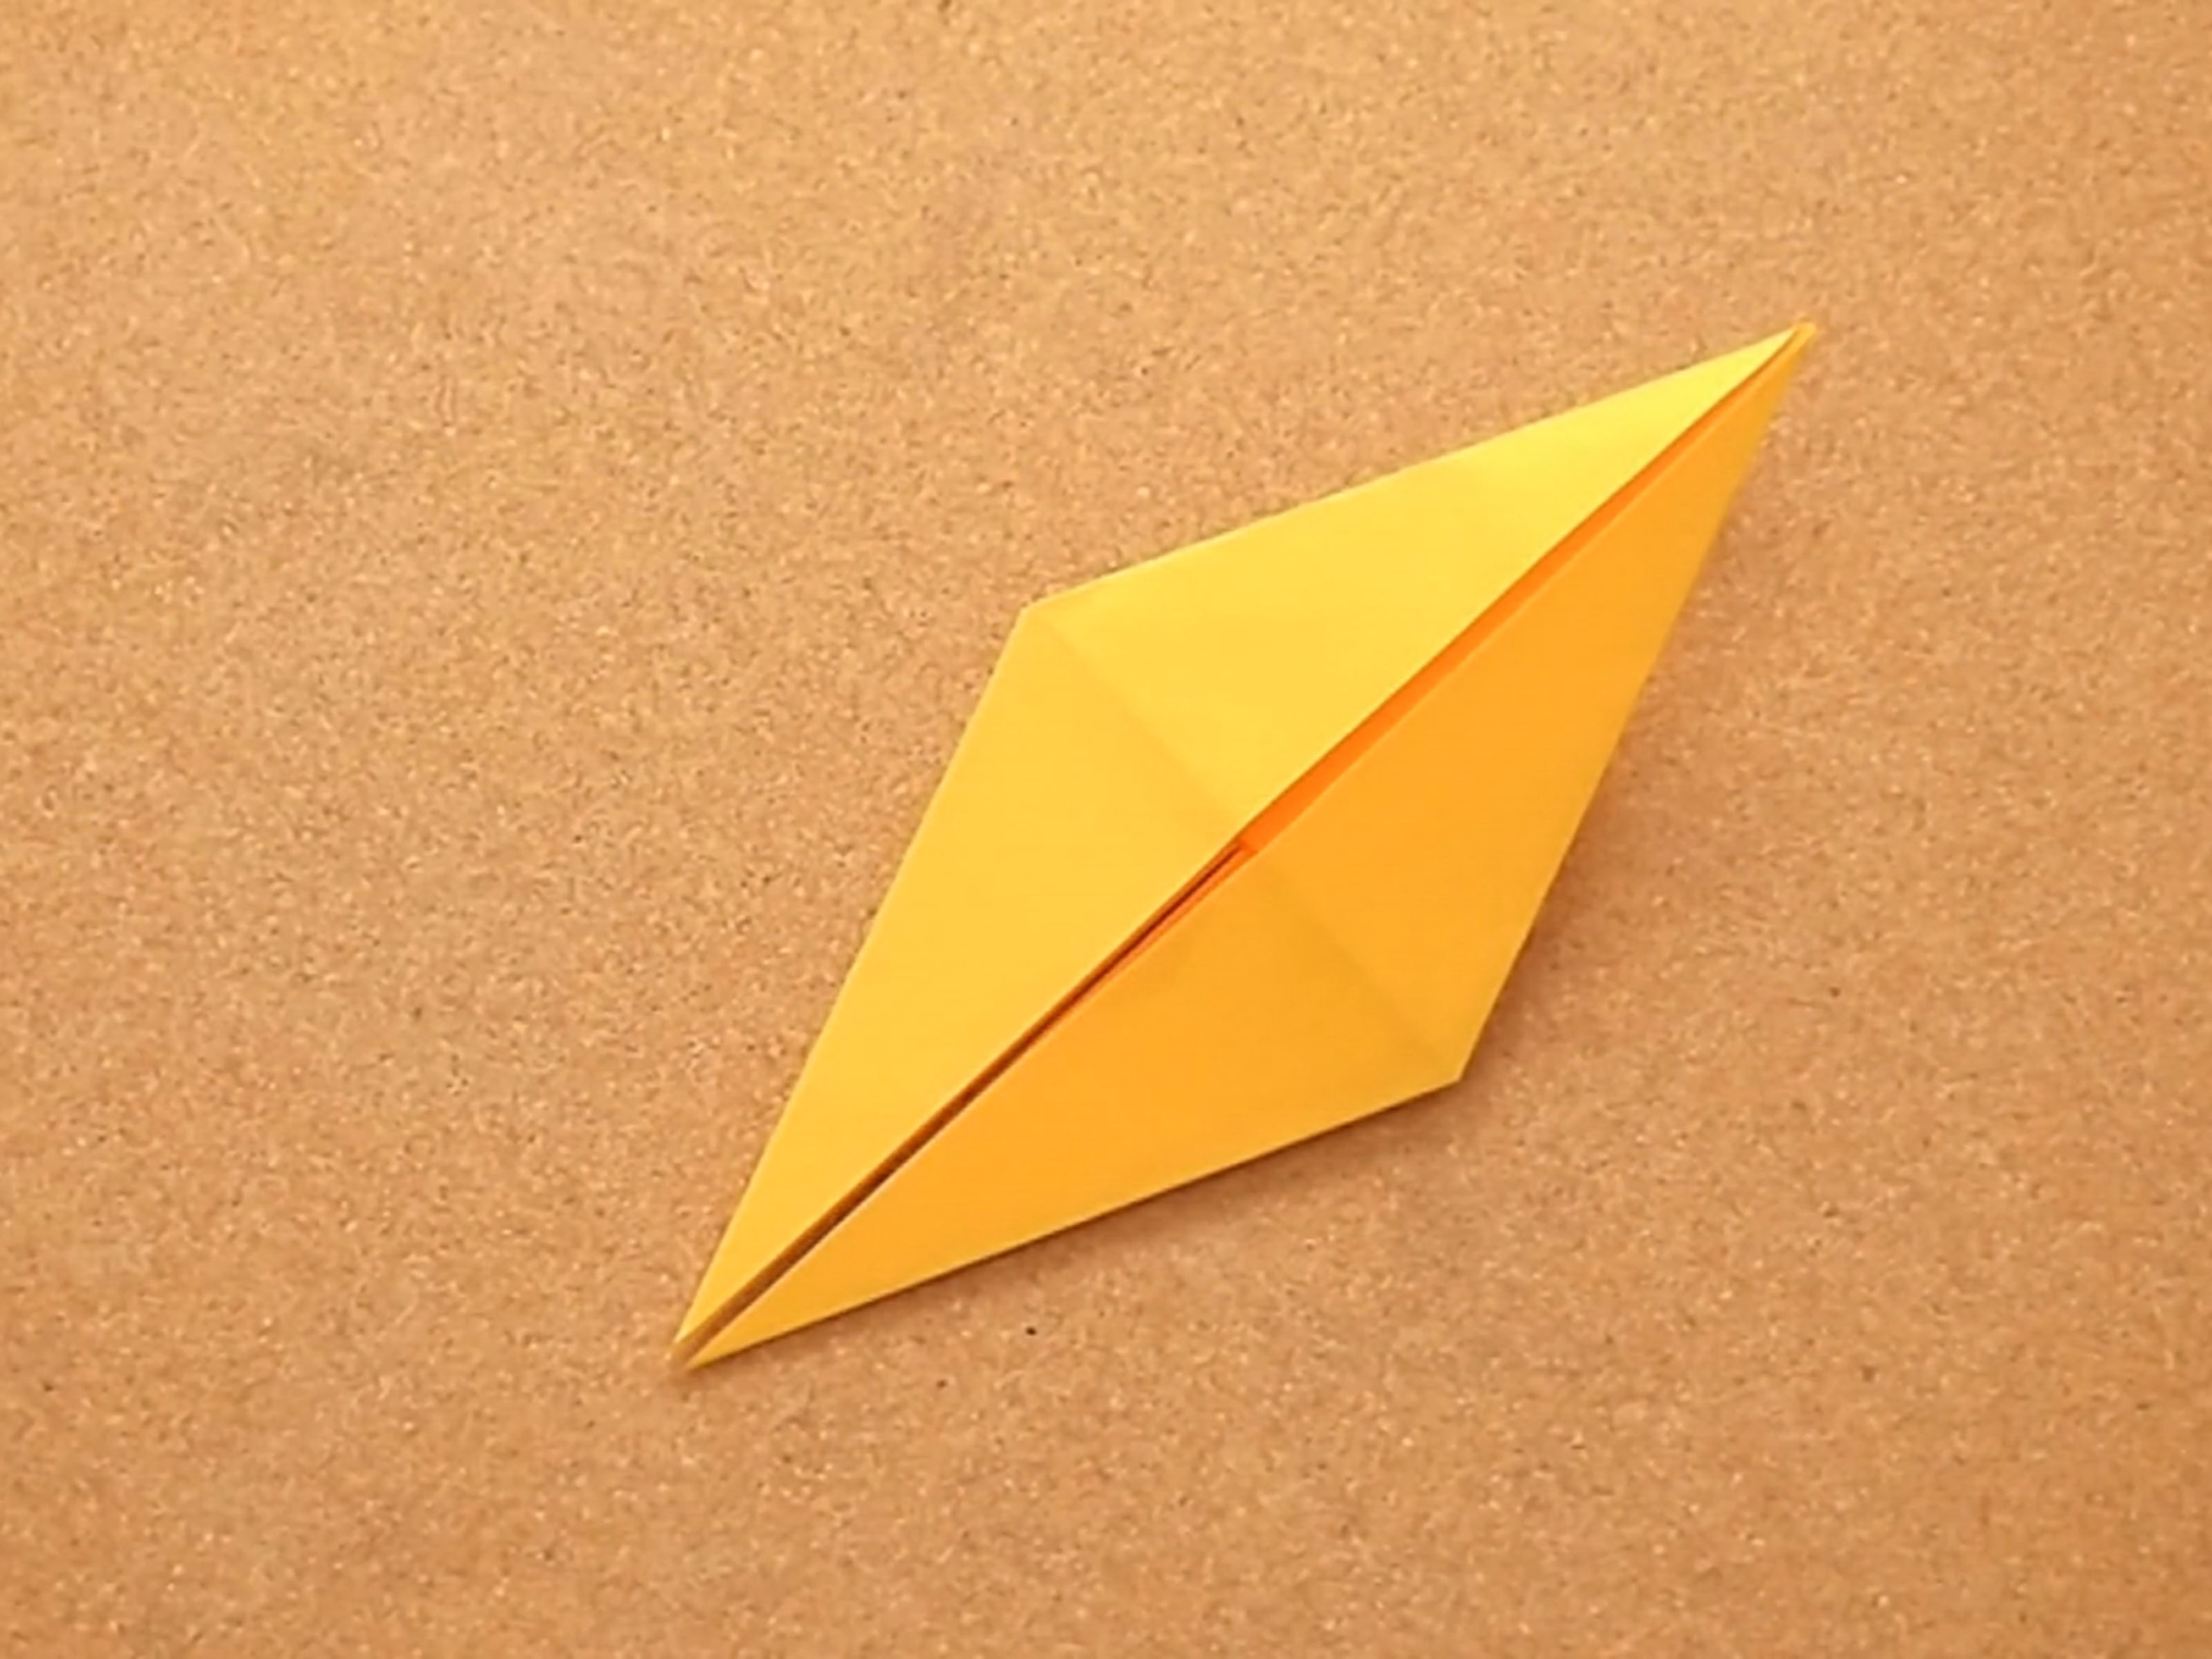 How To Make A Bird With Origami How To Make An Origami Bird Base 13 Steps With Pictures